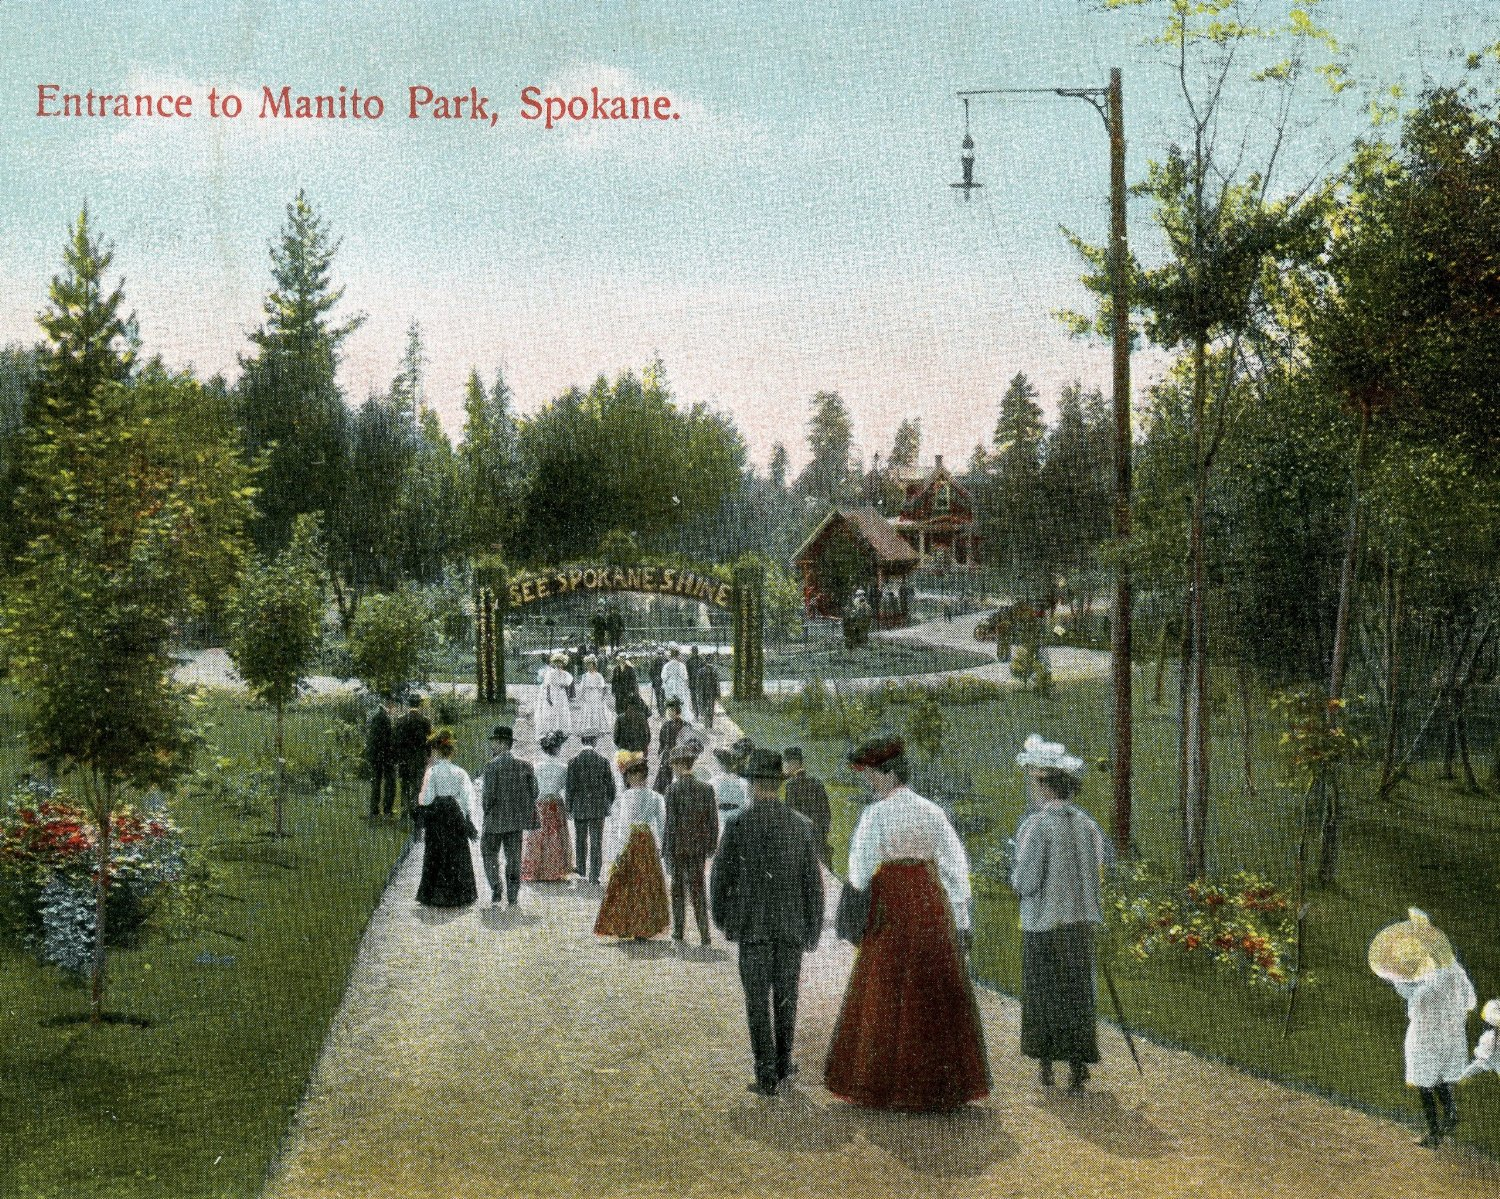 MANITO PARK   The promenade of yesteryear's gentry, the ground for Manito Park is lovingly laid with undertones of greenery and musk. Then, scents from the award-winning rose and lilac gardens waft on the breeze to mingle with exotic jasmine and Victorian tuberose in a turn-of-the-scent-ury blend that's anything but old fashioned.